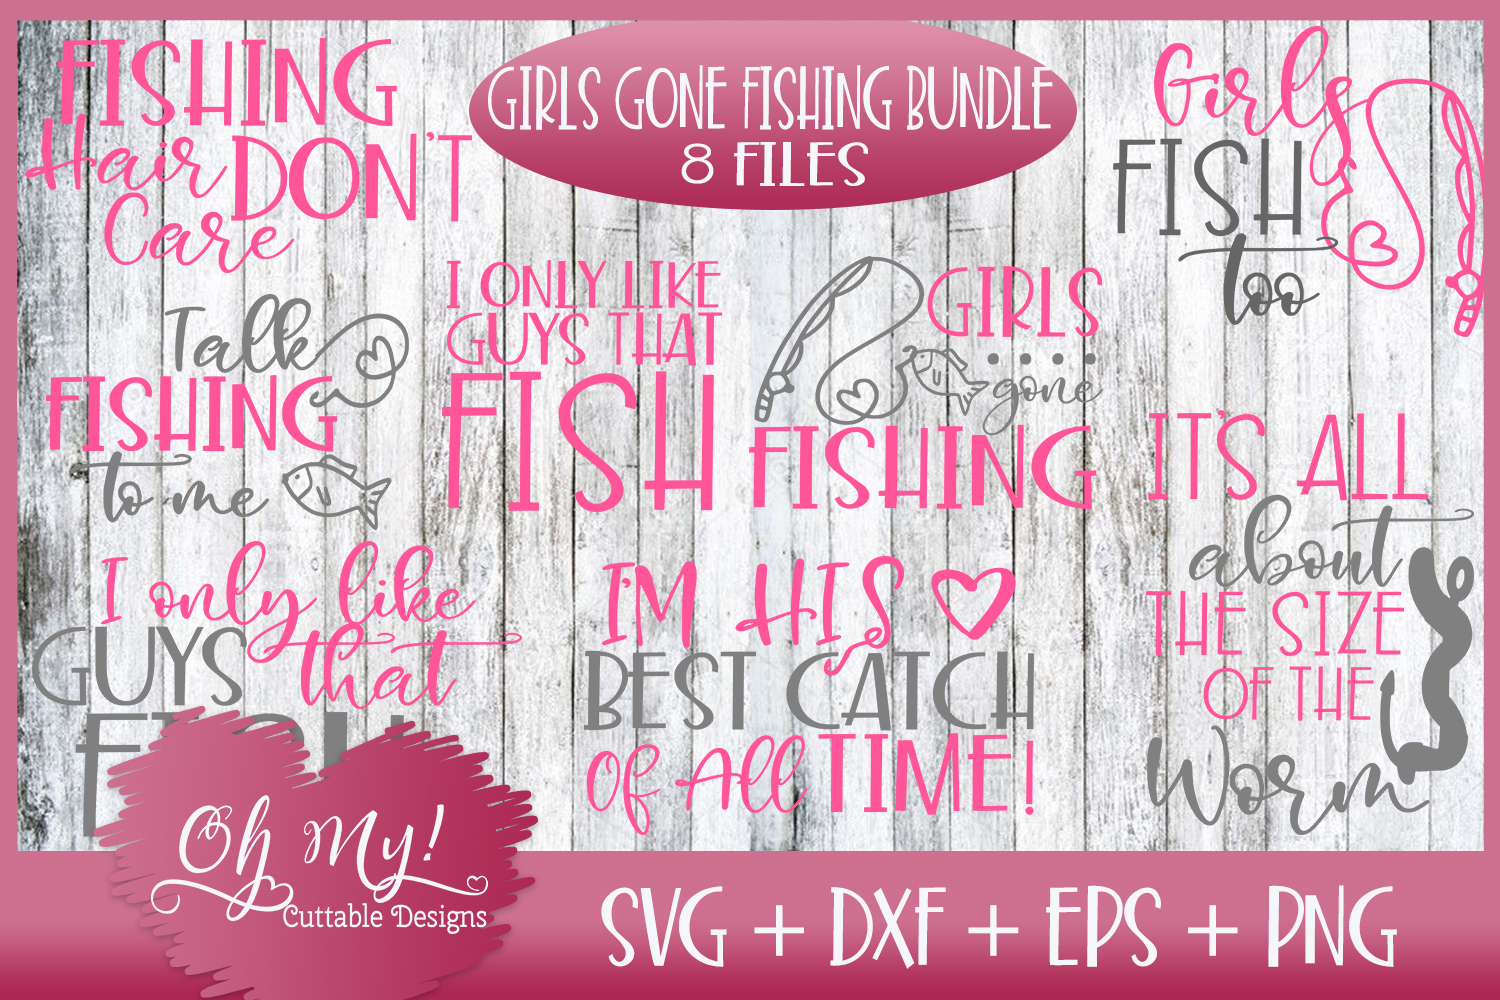 OH MY! HUGE FISHING BUNDLE DESIGNS SVG DXF EPS PNG example image 4